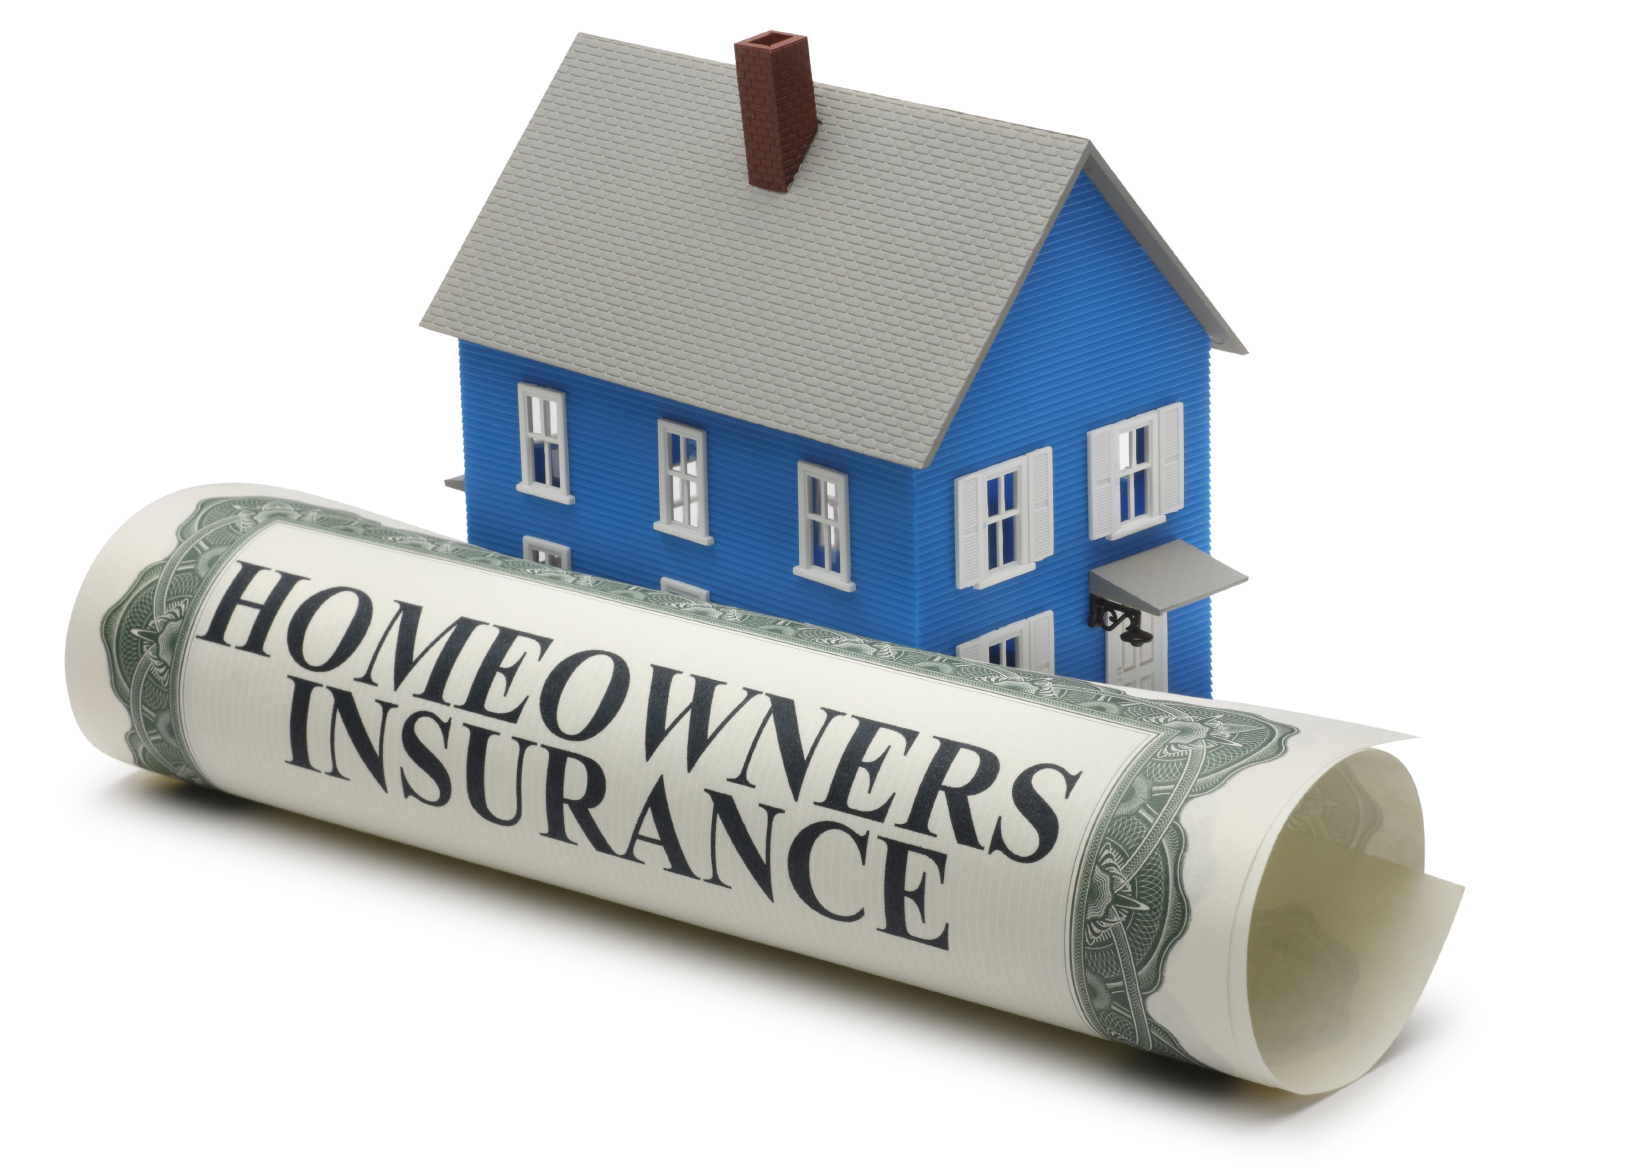 Homeowners-Insurance-Artwork